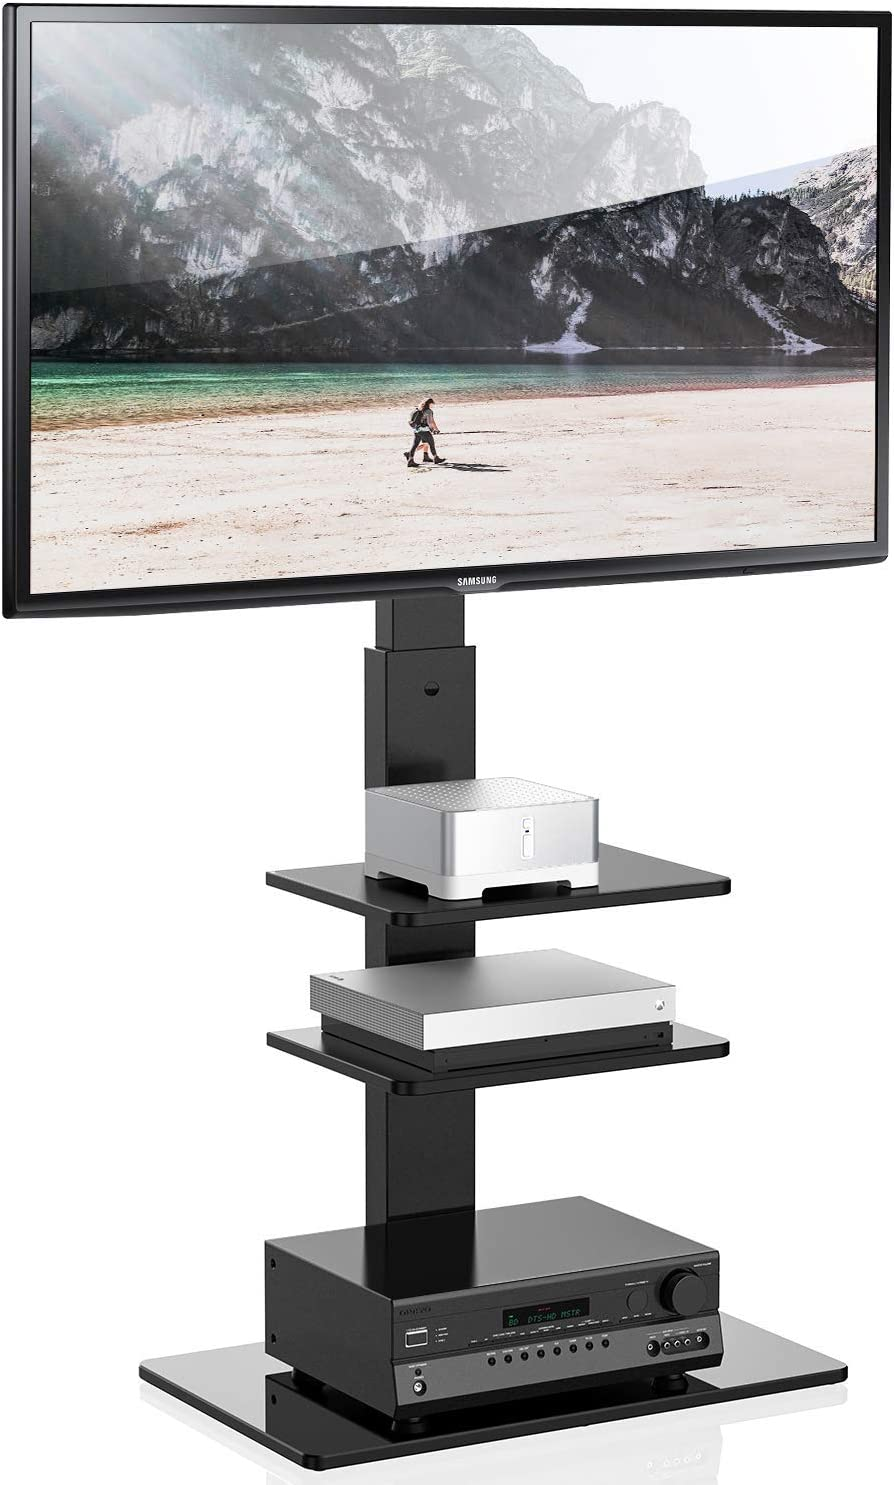 FITUEYES Swivel TV Stand with Mount for 32-65 Inch TT307001MB